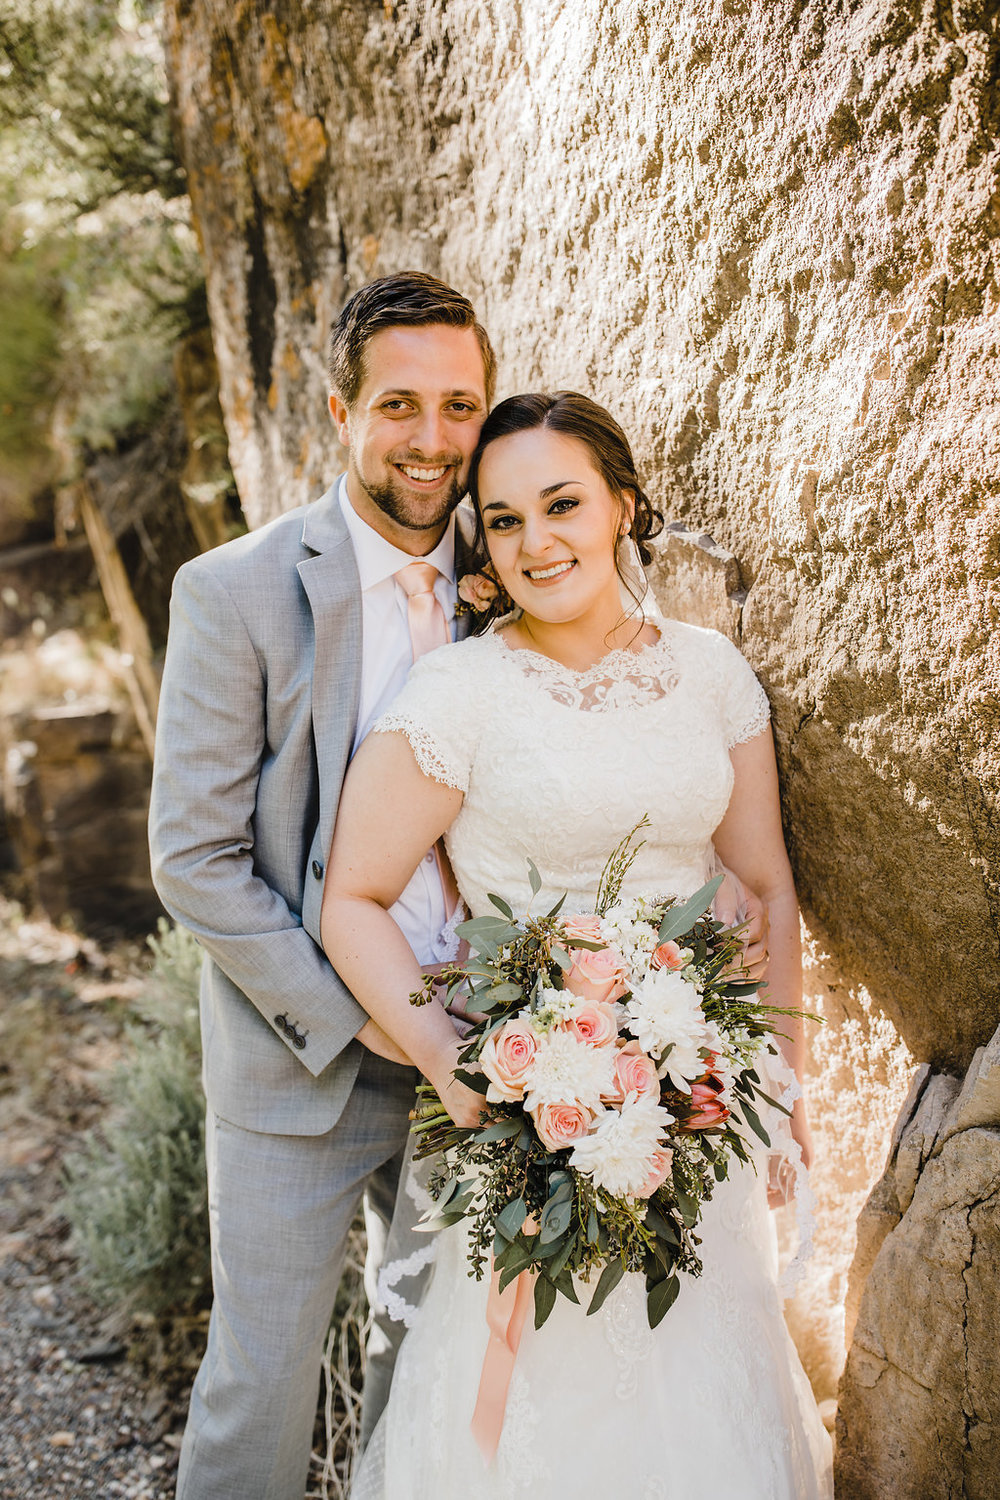 bride and groom on wedding day monroe utah blush and grey